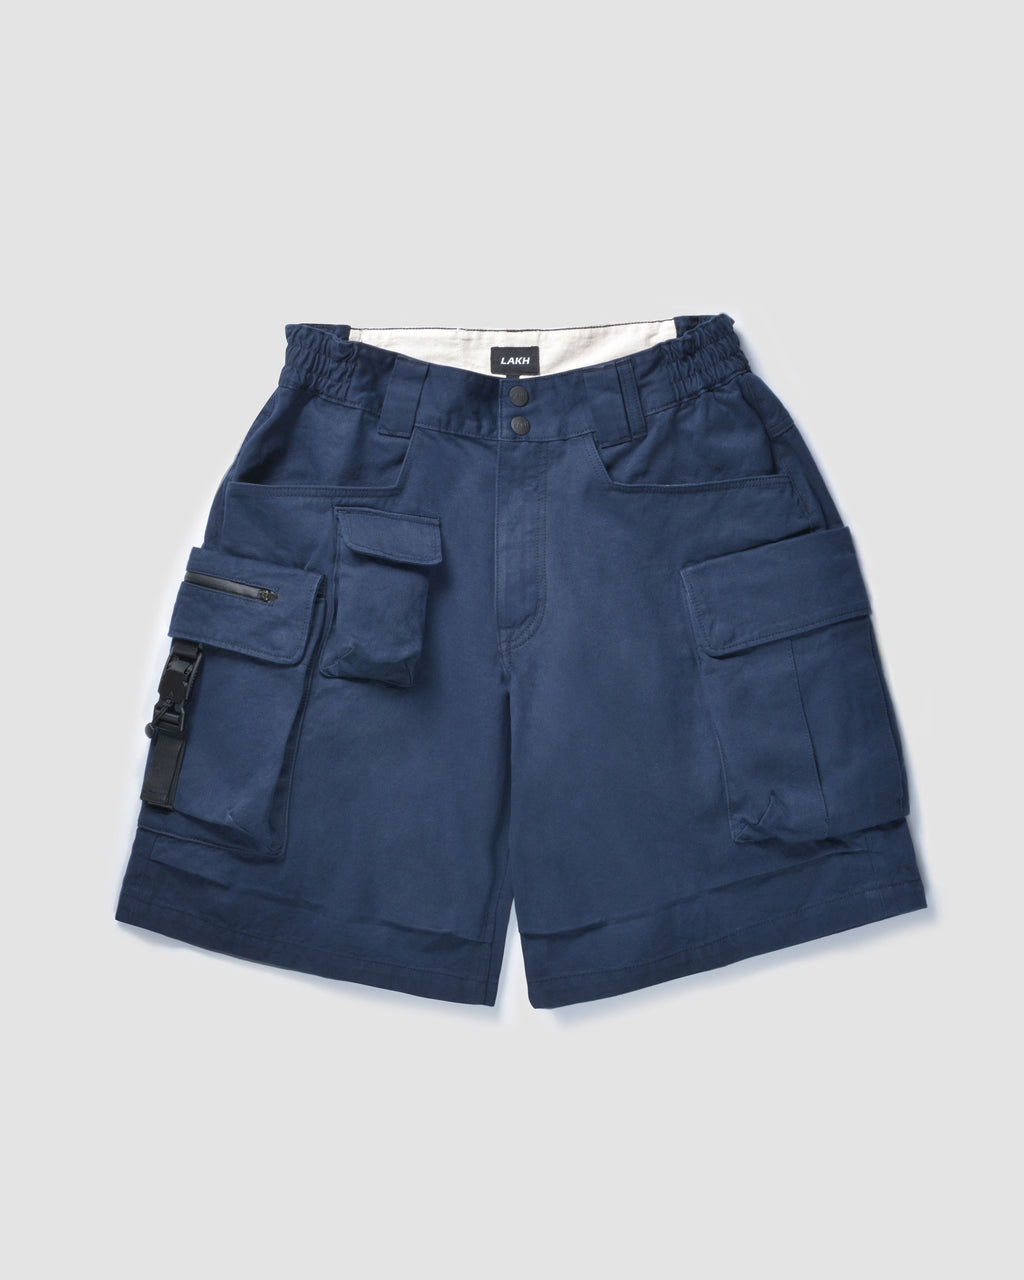 Ten Pockets Cargo Shorts - Redline Navy